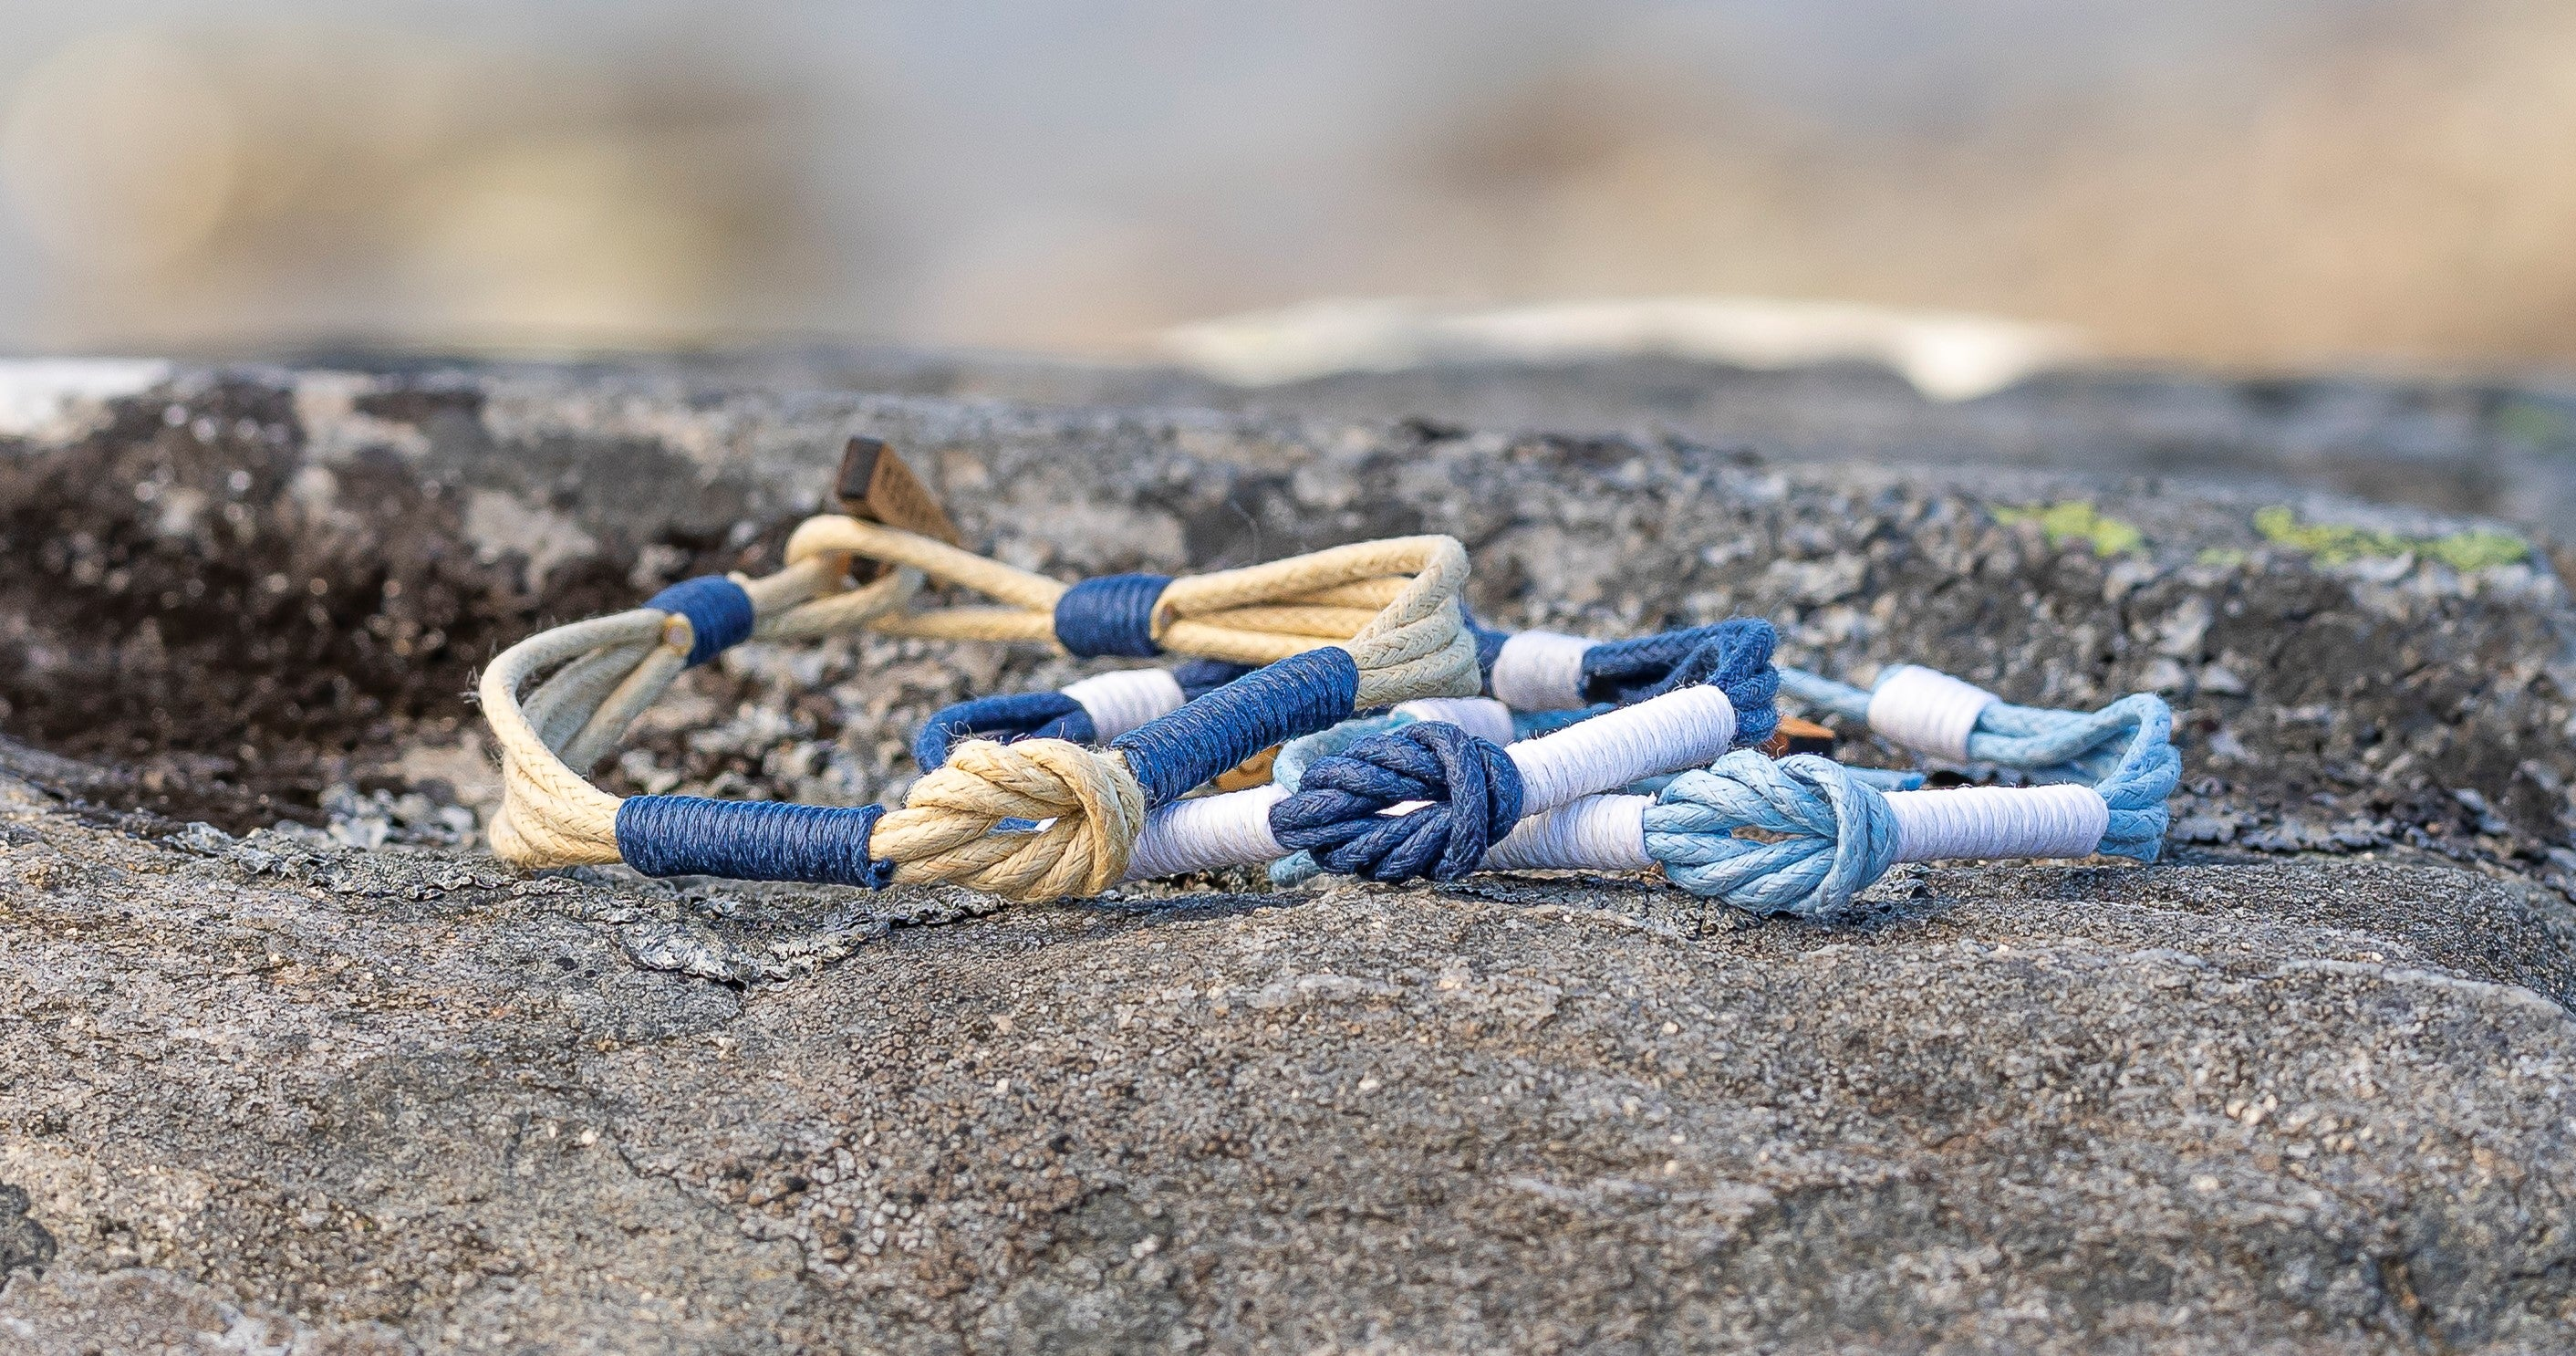 CleanSea bracelets removing plastic from the ocean, 1 bracelet - 1 kilo